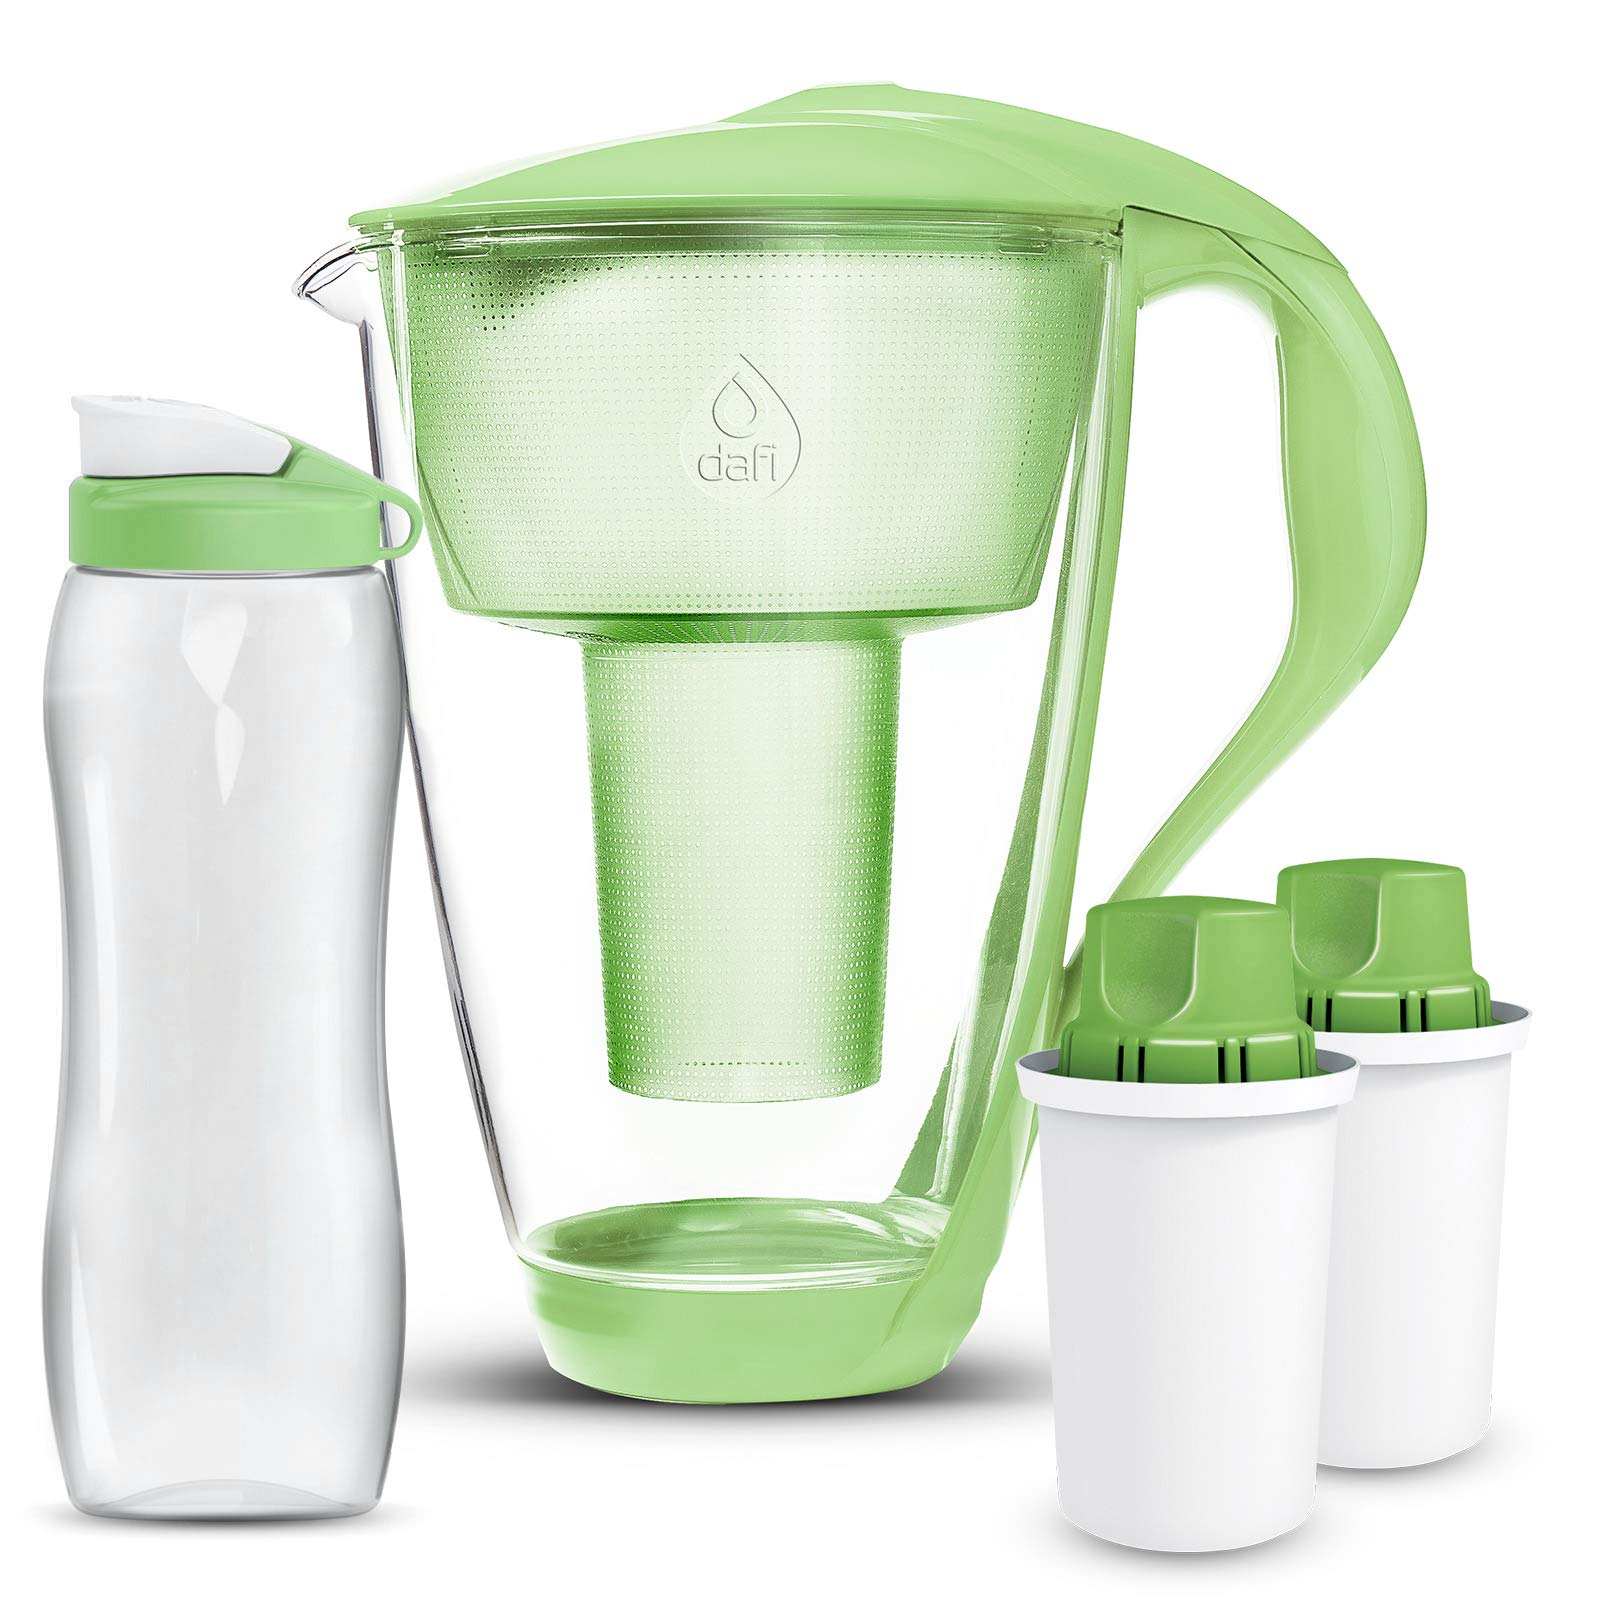 Dafi Alkaline UP Crystal Glass Water Pitcher 8 cups LED - made from Borosilicate Glass - Set with 2 Alkaline UP Water Filters and FREE 24 fl oz Sport Water Bottle (Green)